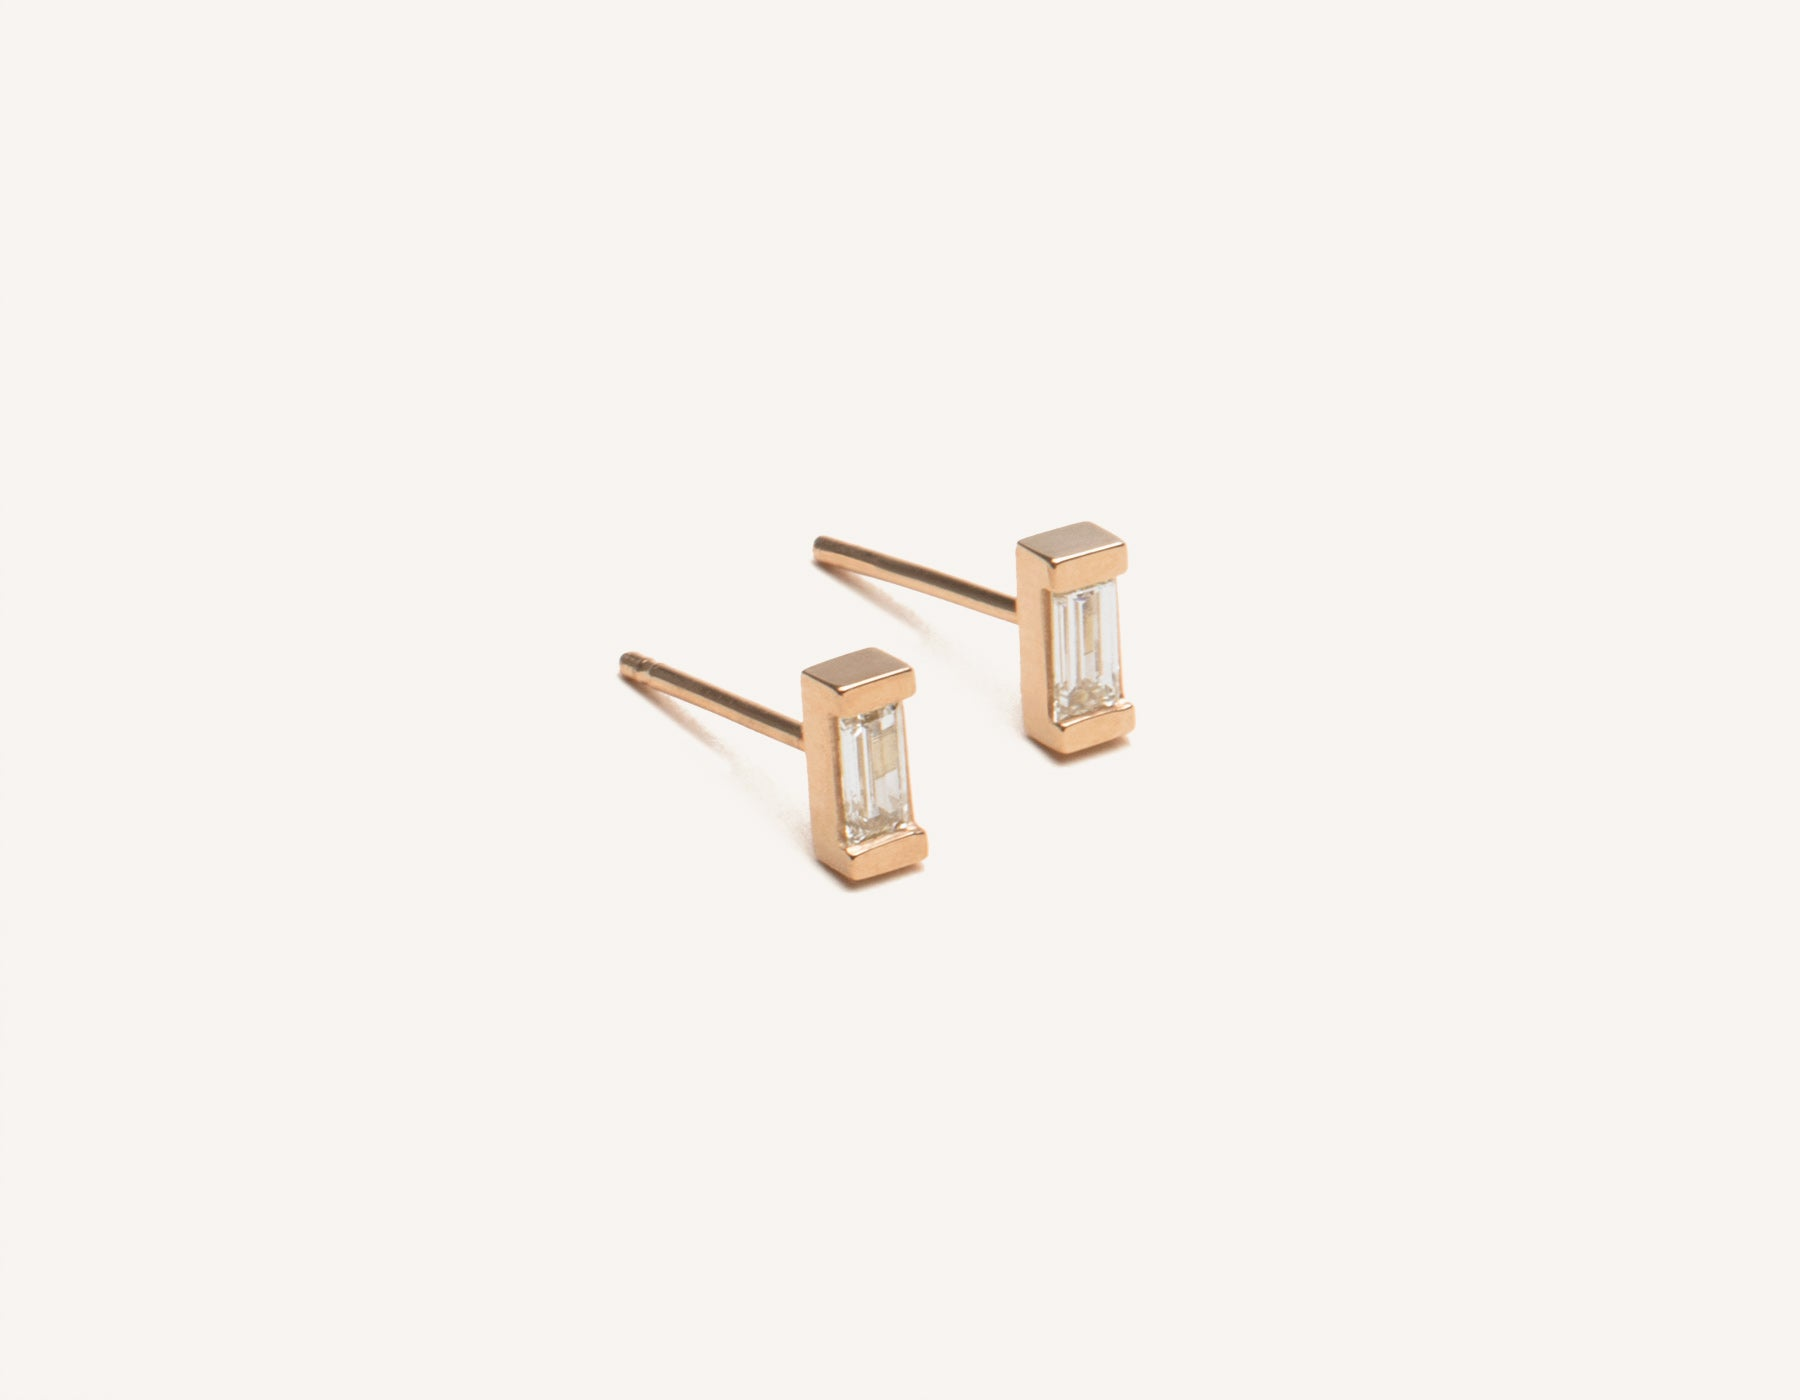 Modern Minimalist jewelry 14k solid gold Baguette Diamond stud Earrings from Vrai & Oro in a channel setting, 14K Rose Gold